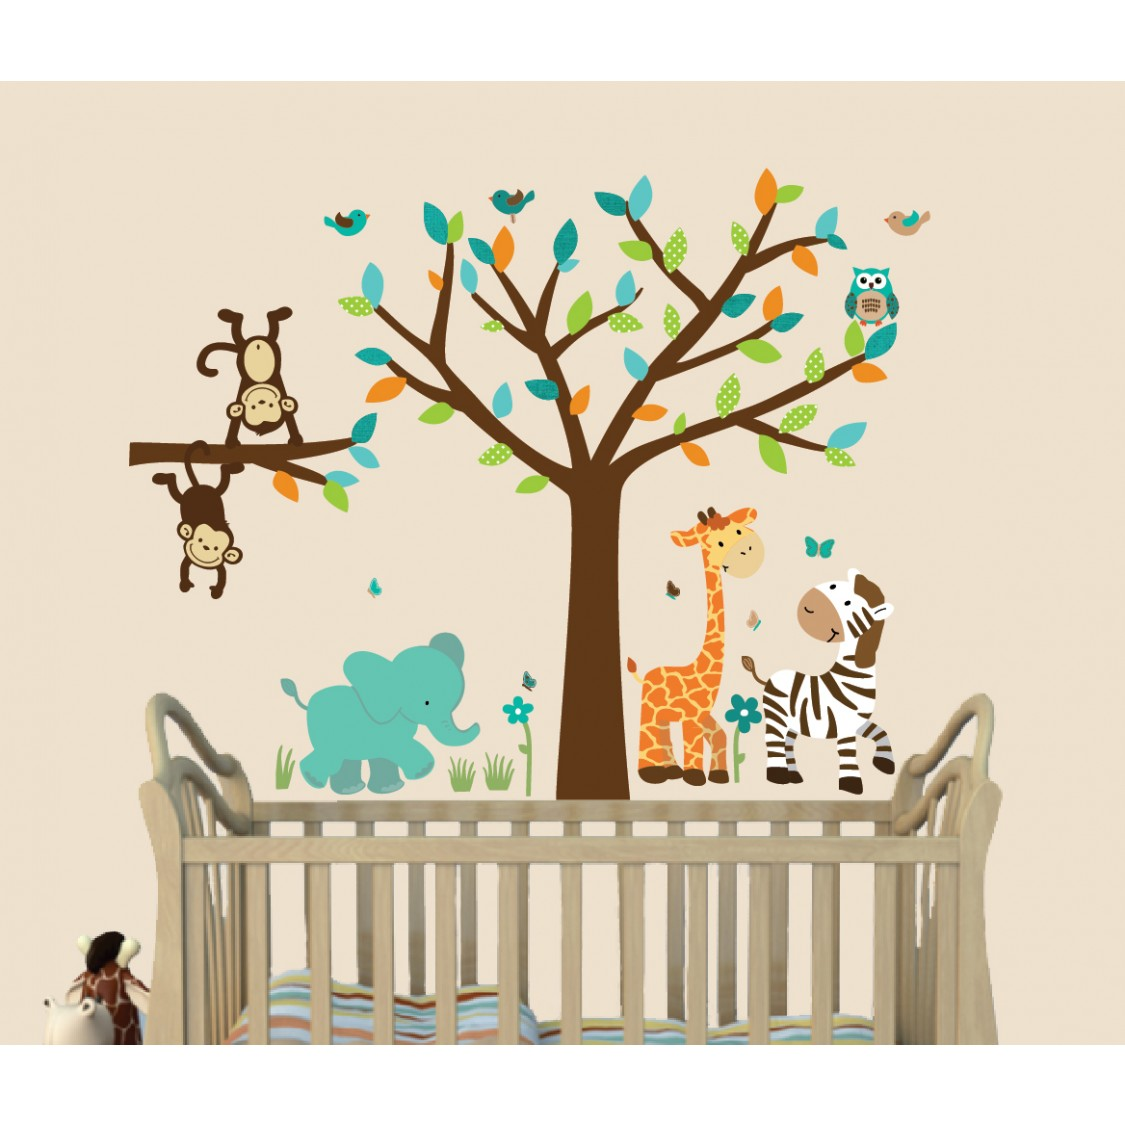 Teal Jungle Stickers With Elephant Wall Mural For Kids